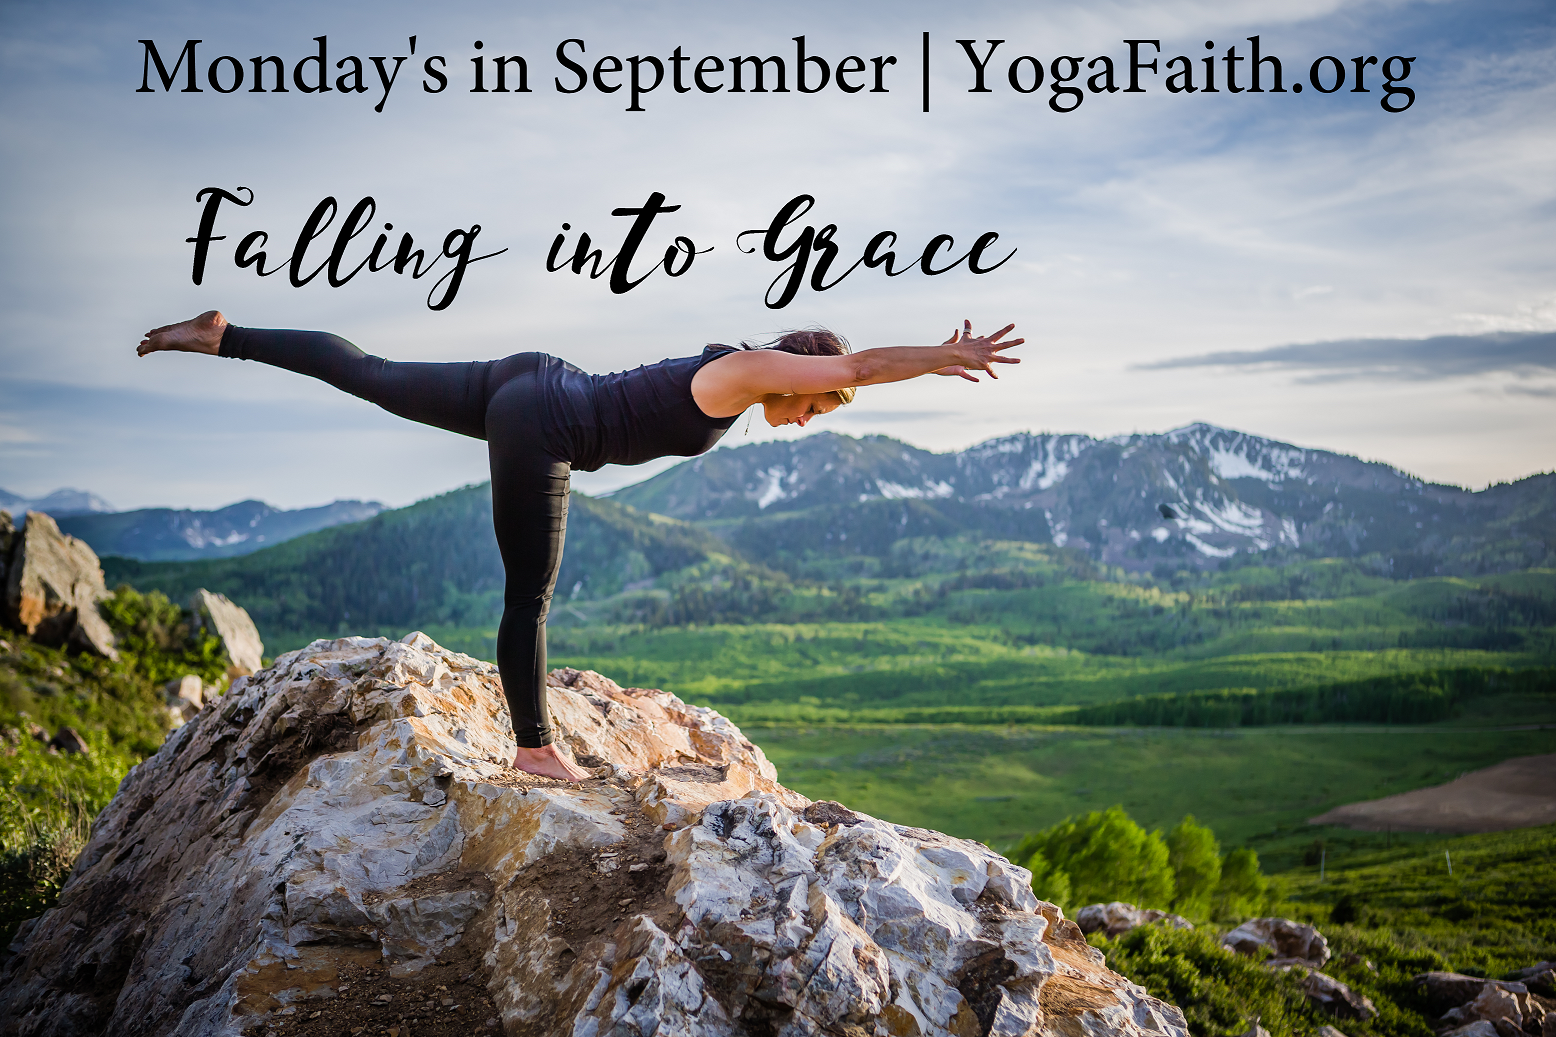 christian yoga teacher training certification yoga faith alliance falling into grace gracefull meditations in